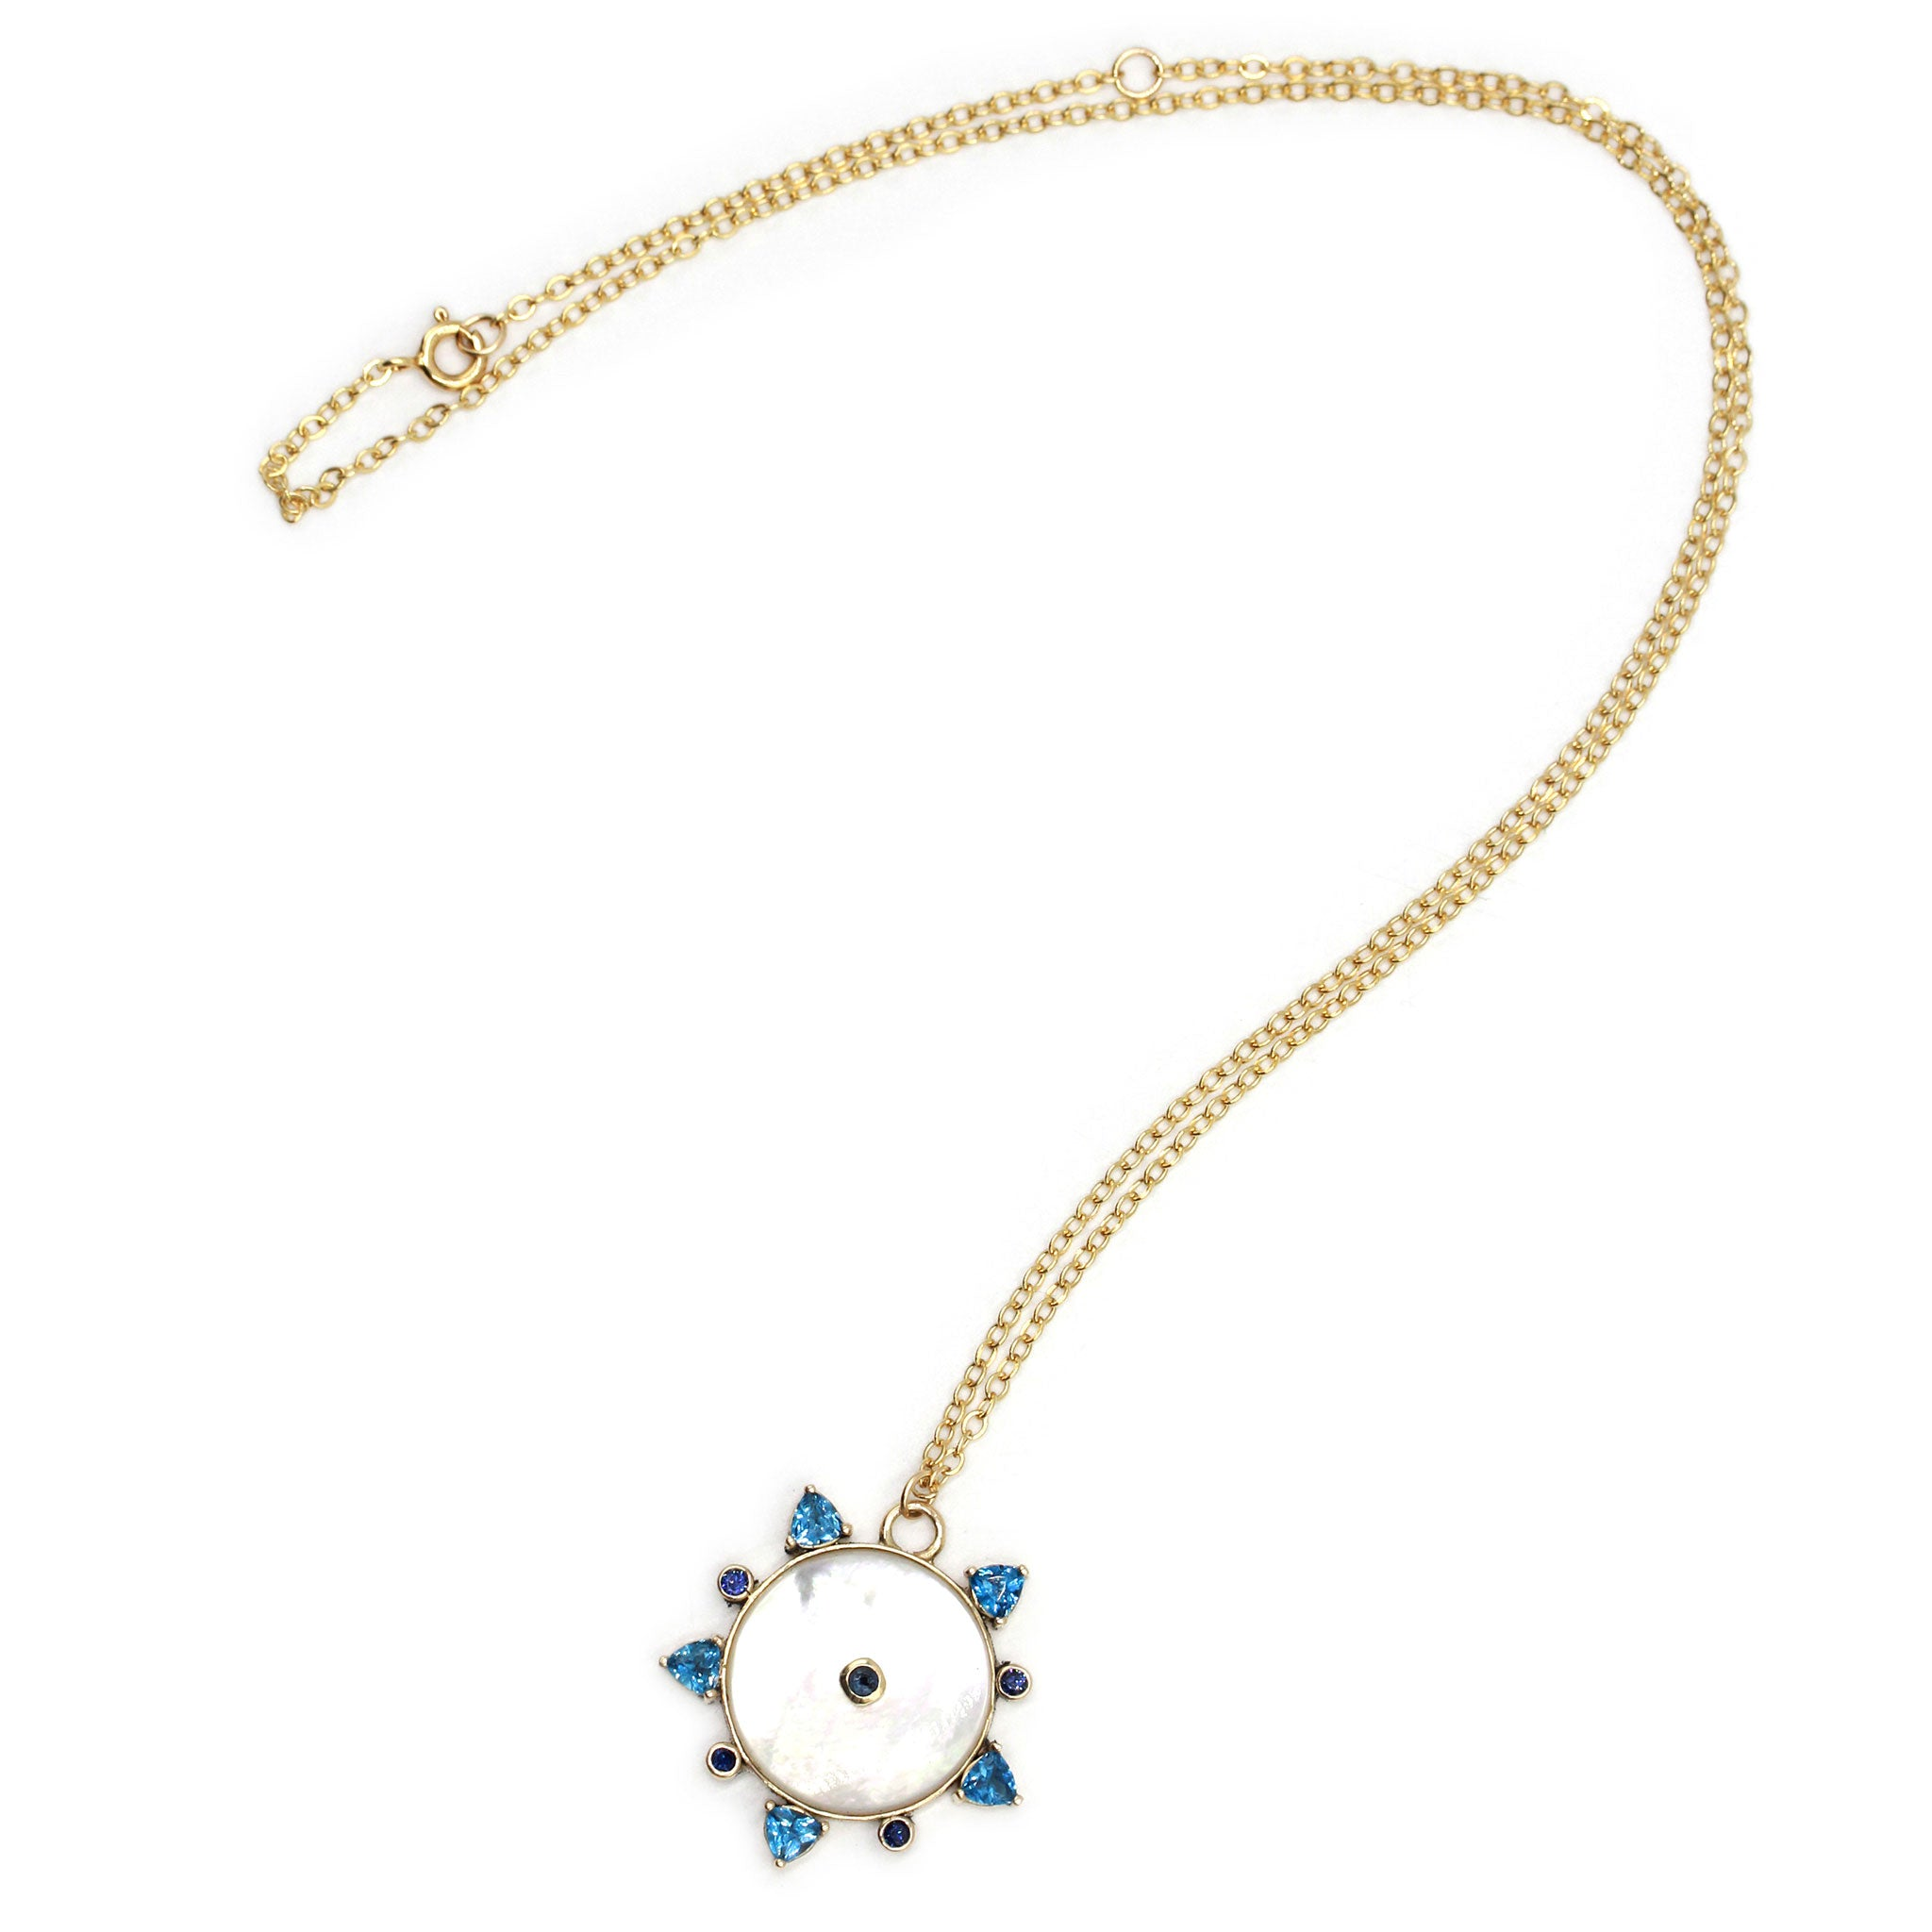 Talisman Necklace in Mother of Pearl with Blue Topaz and Sapphire in gold